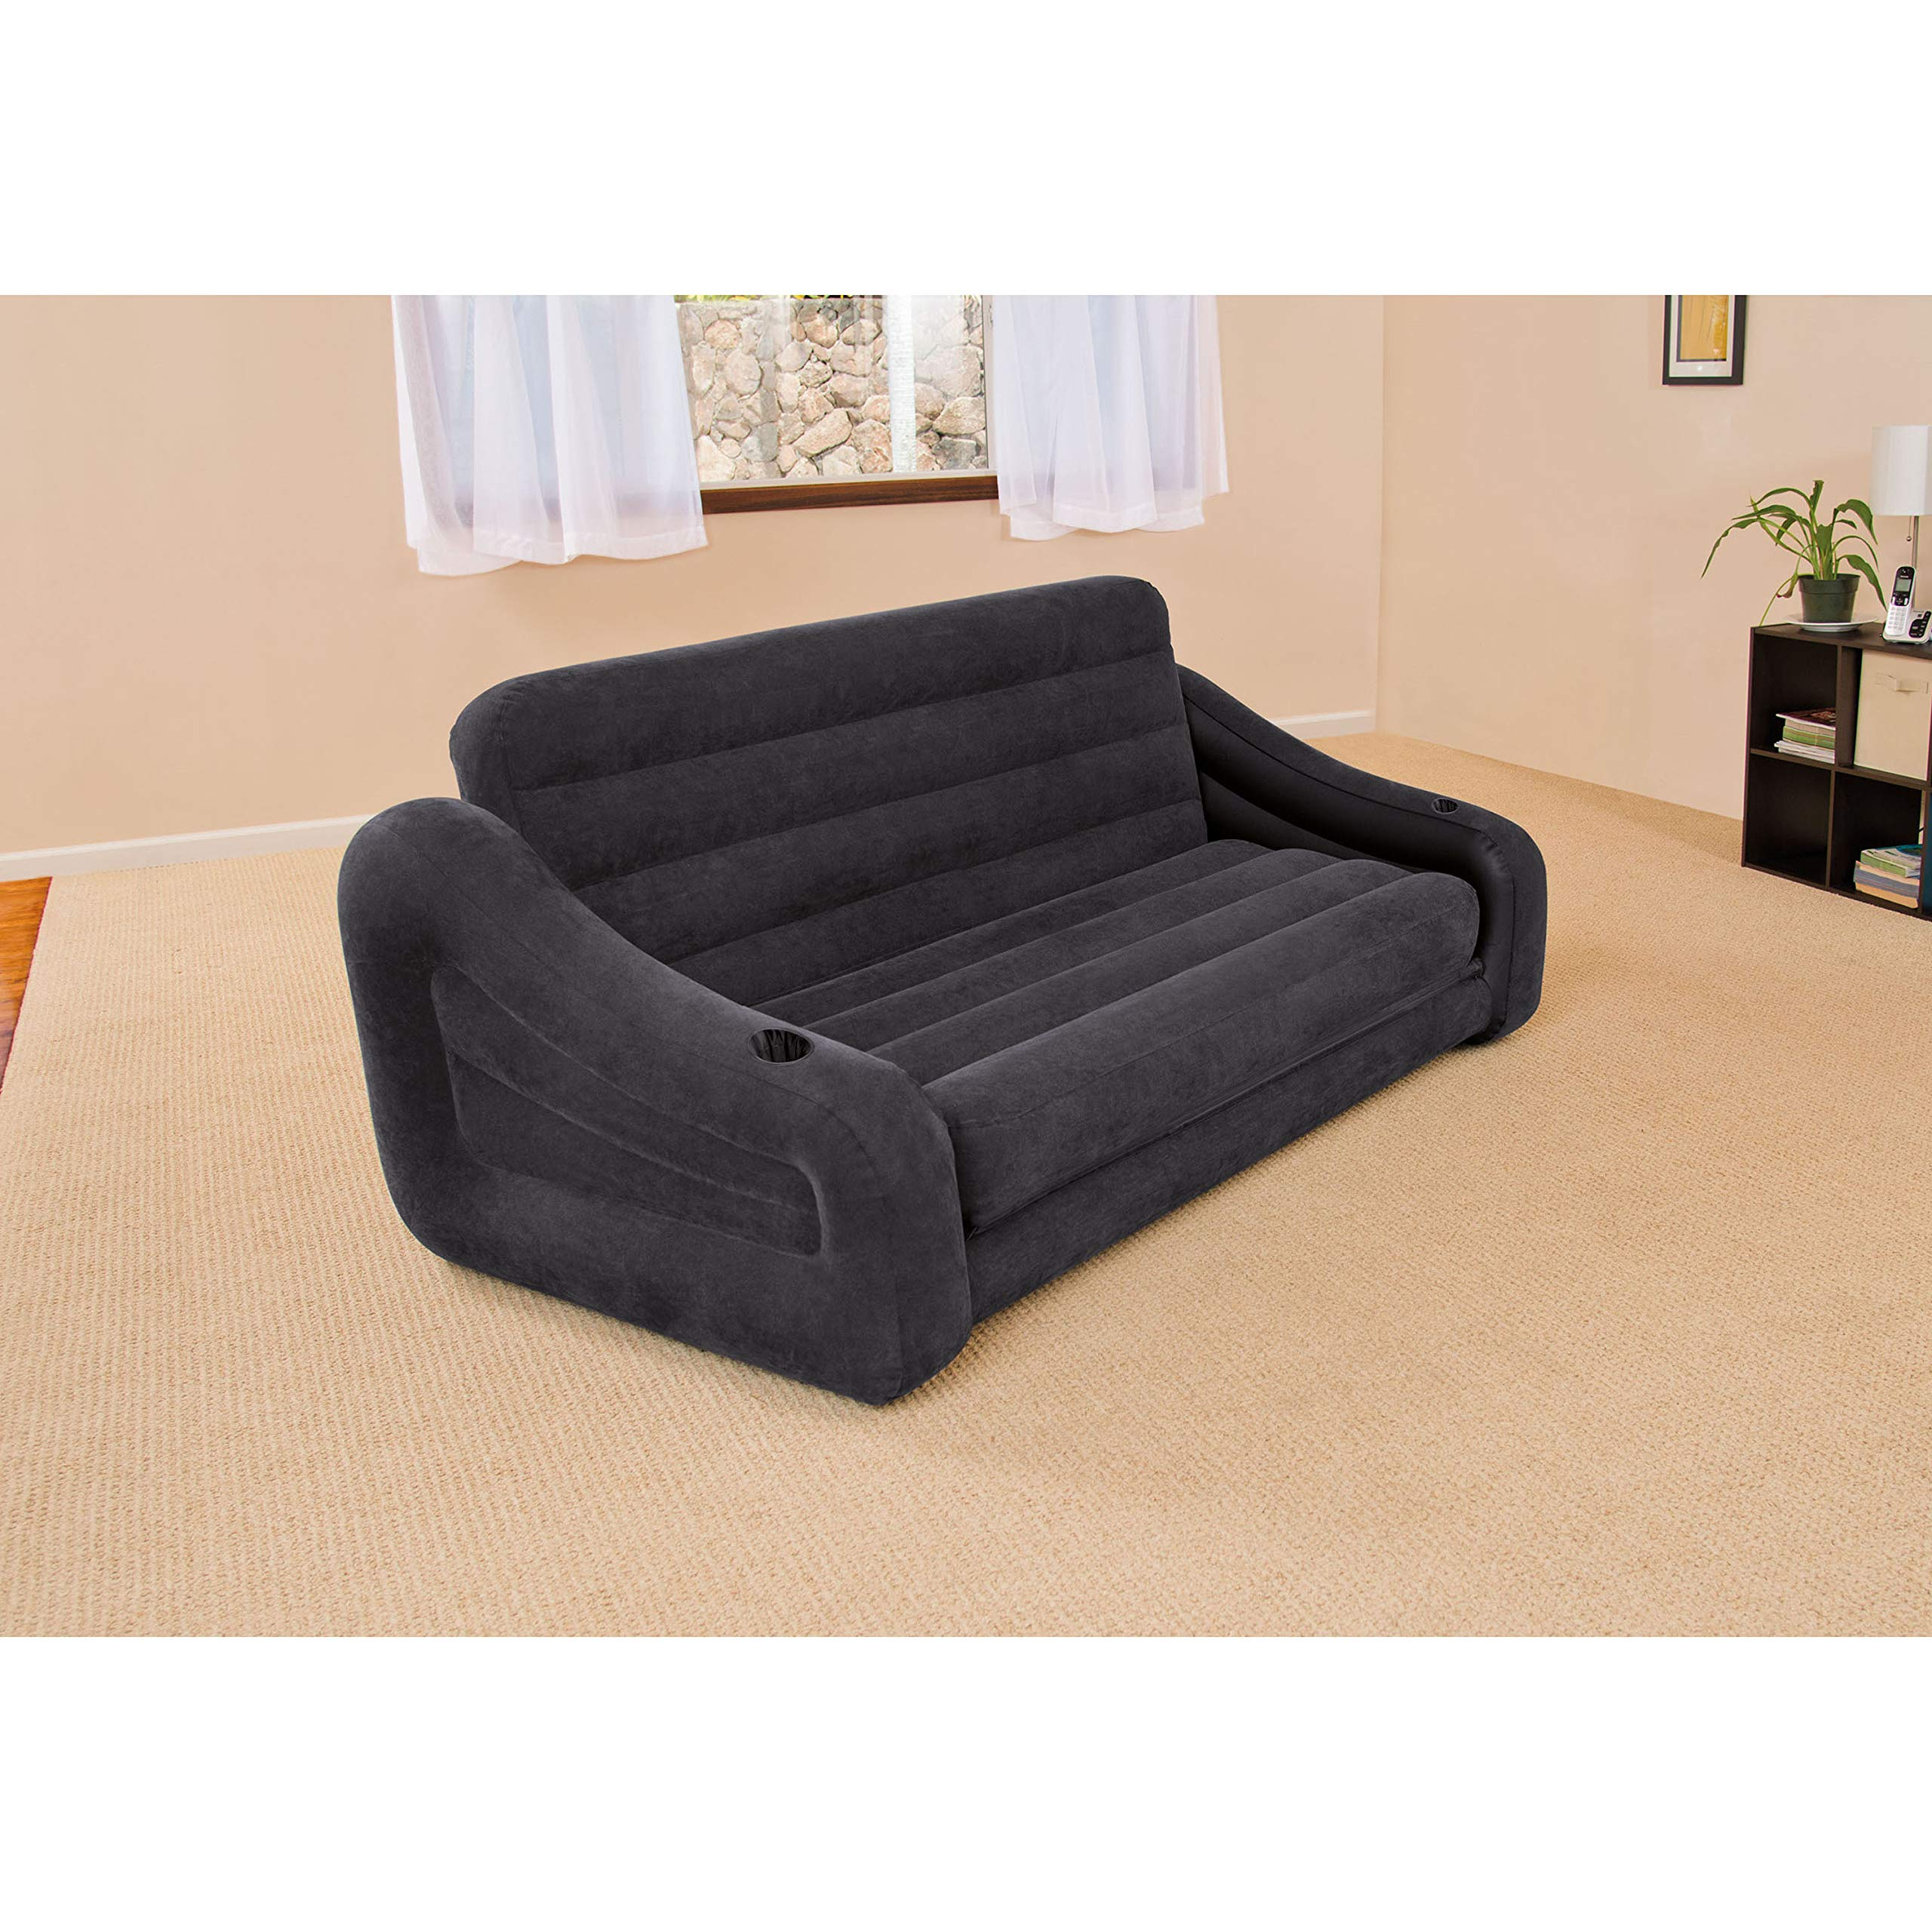 """Queen 76/"""" X 87/"""" X 26/"""" Pull-out Sofa Inflatable Bed"""